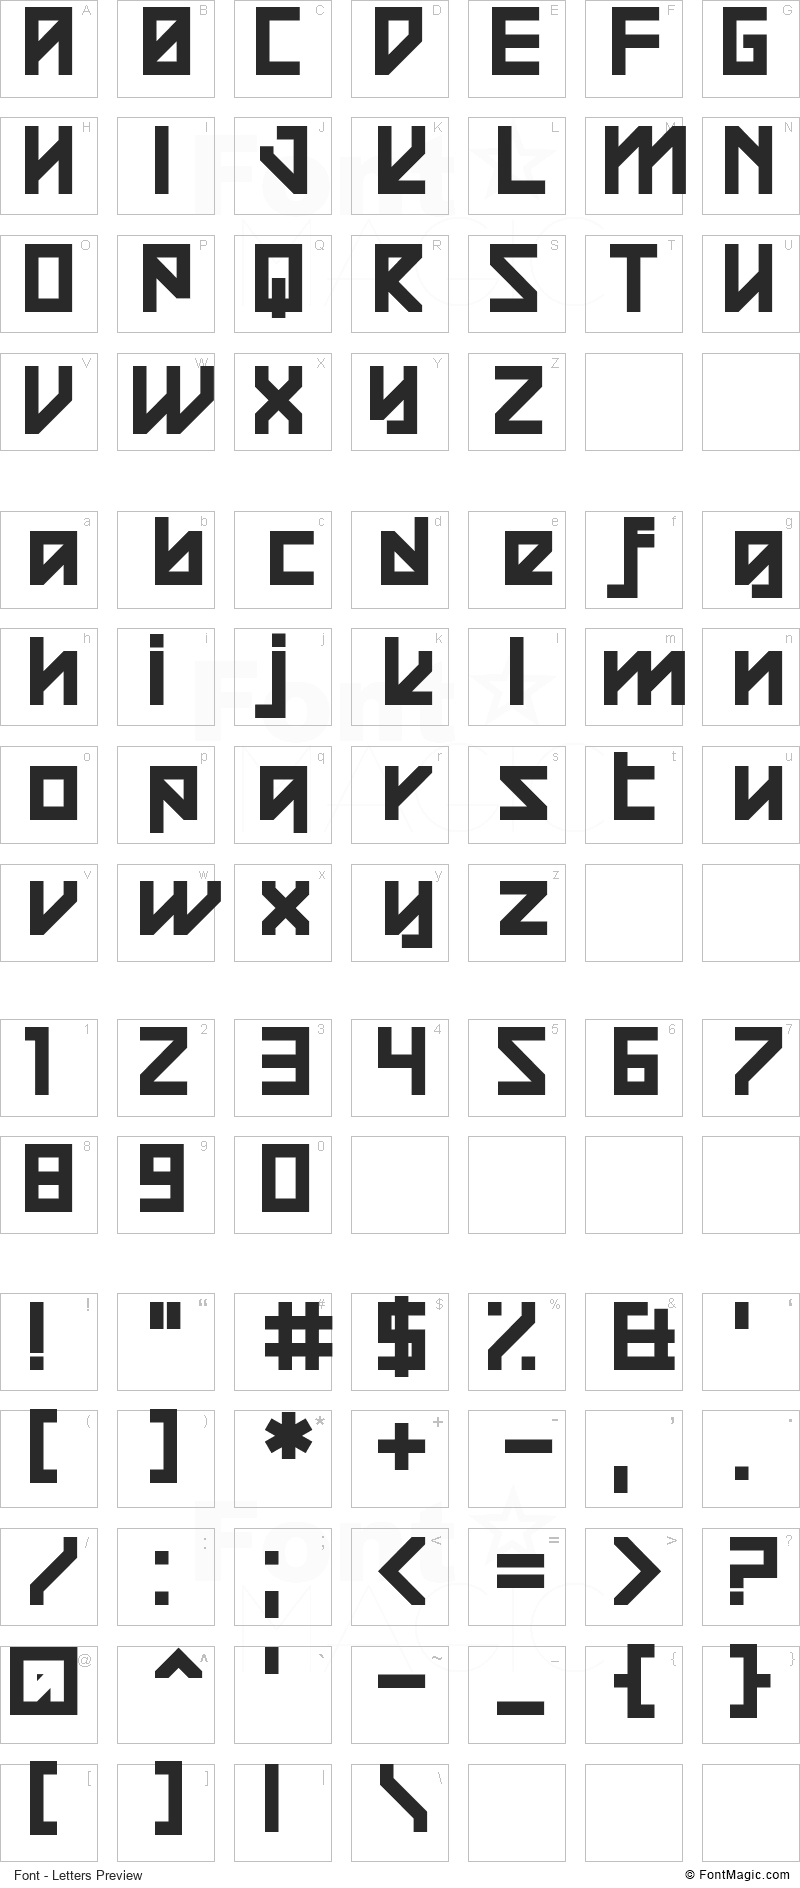 Square Raising Font - All Latters Preview Chart